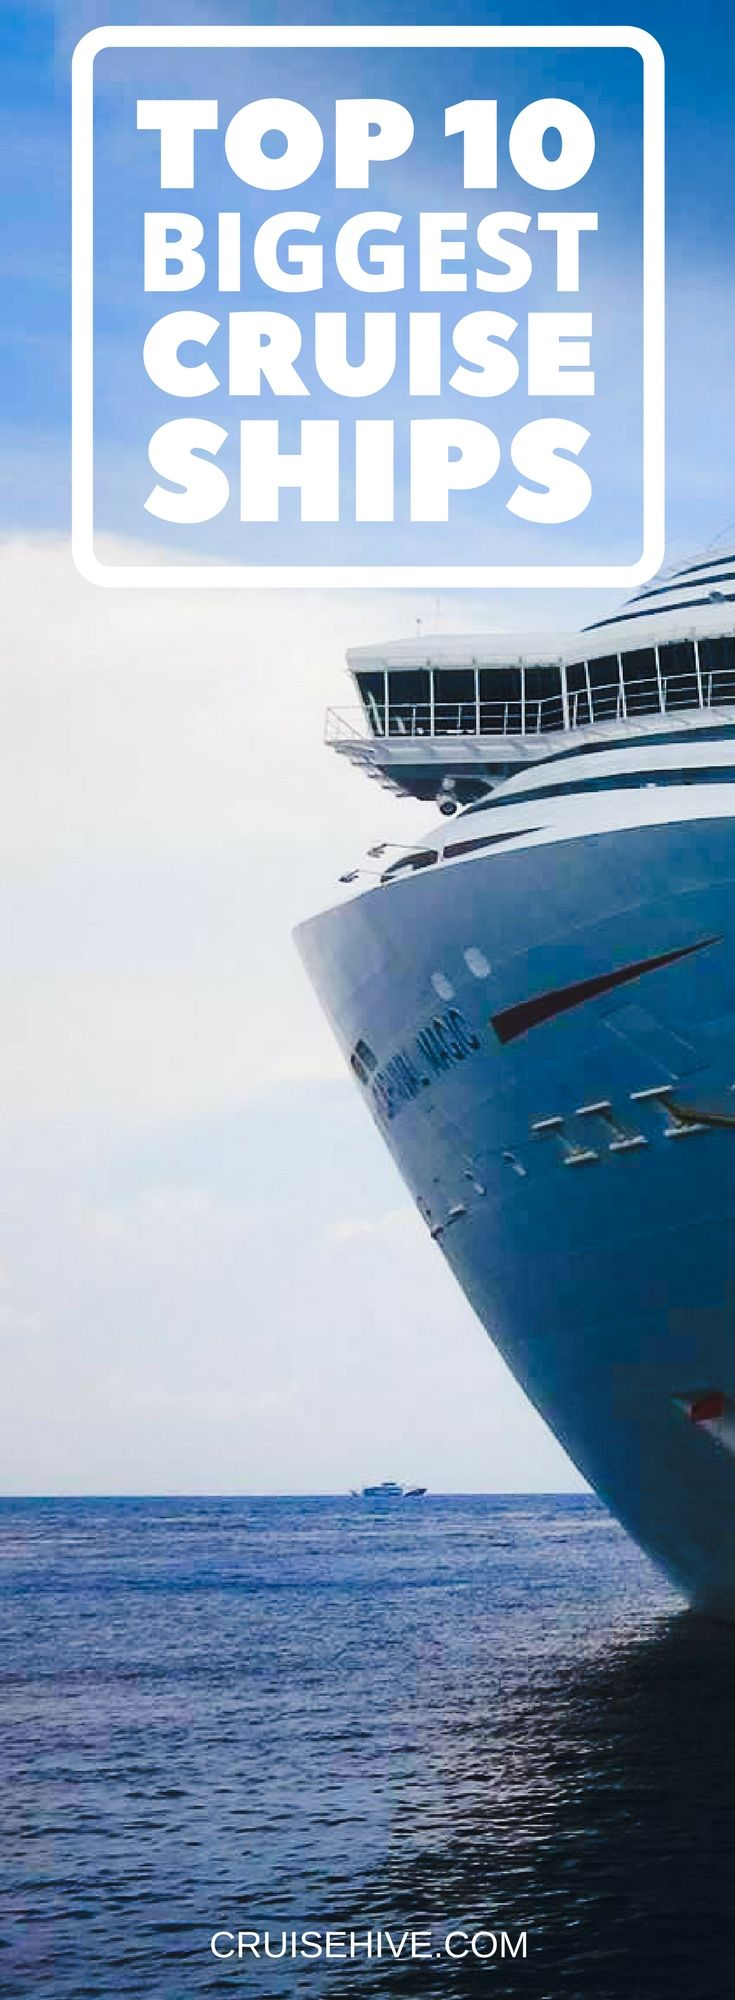 Top Biggest Cruise Ships In The World Biggest Cruise Ship - Biggest cruise ships list